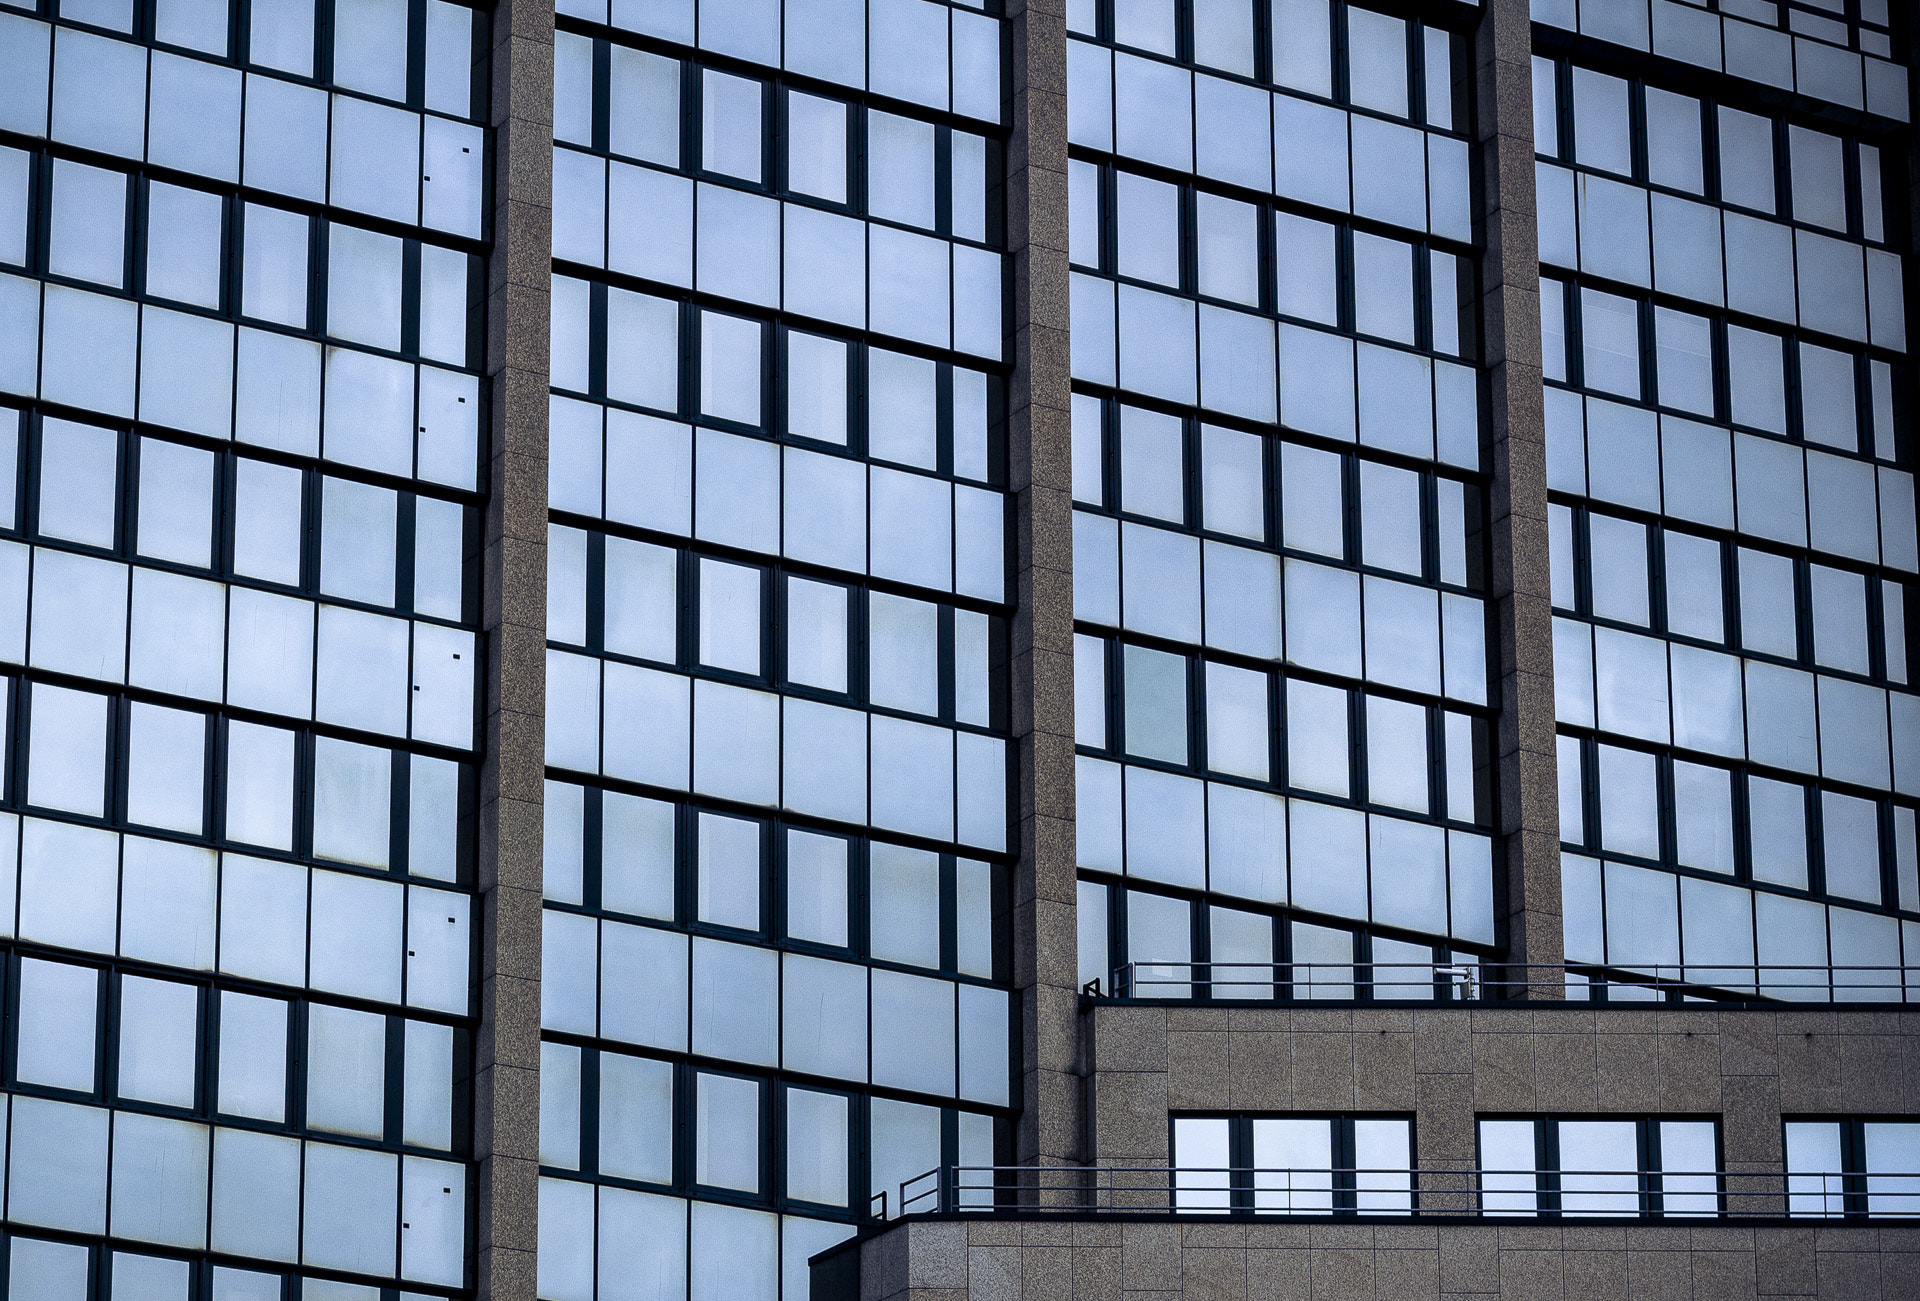 Photograph Lines and windows by David Kaiser on 500px